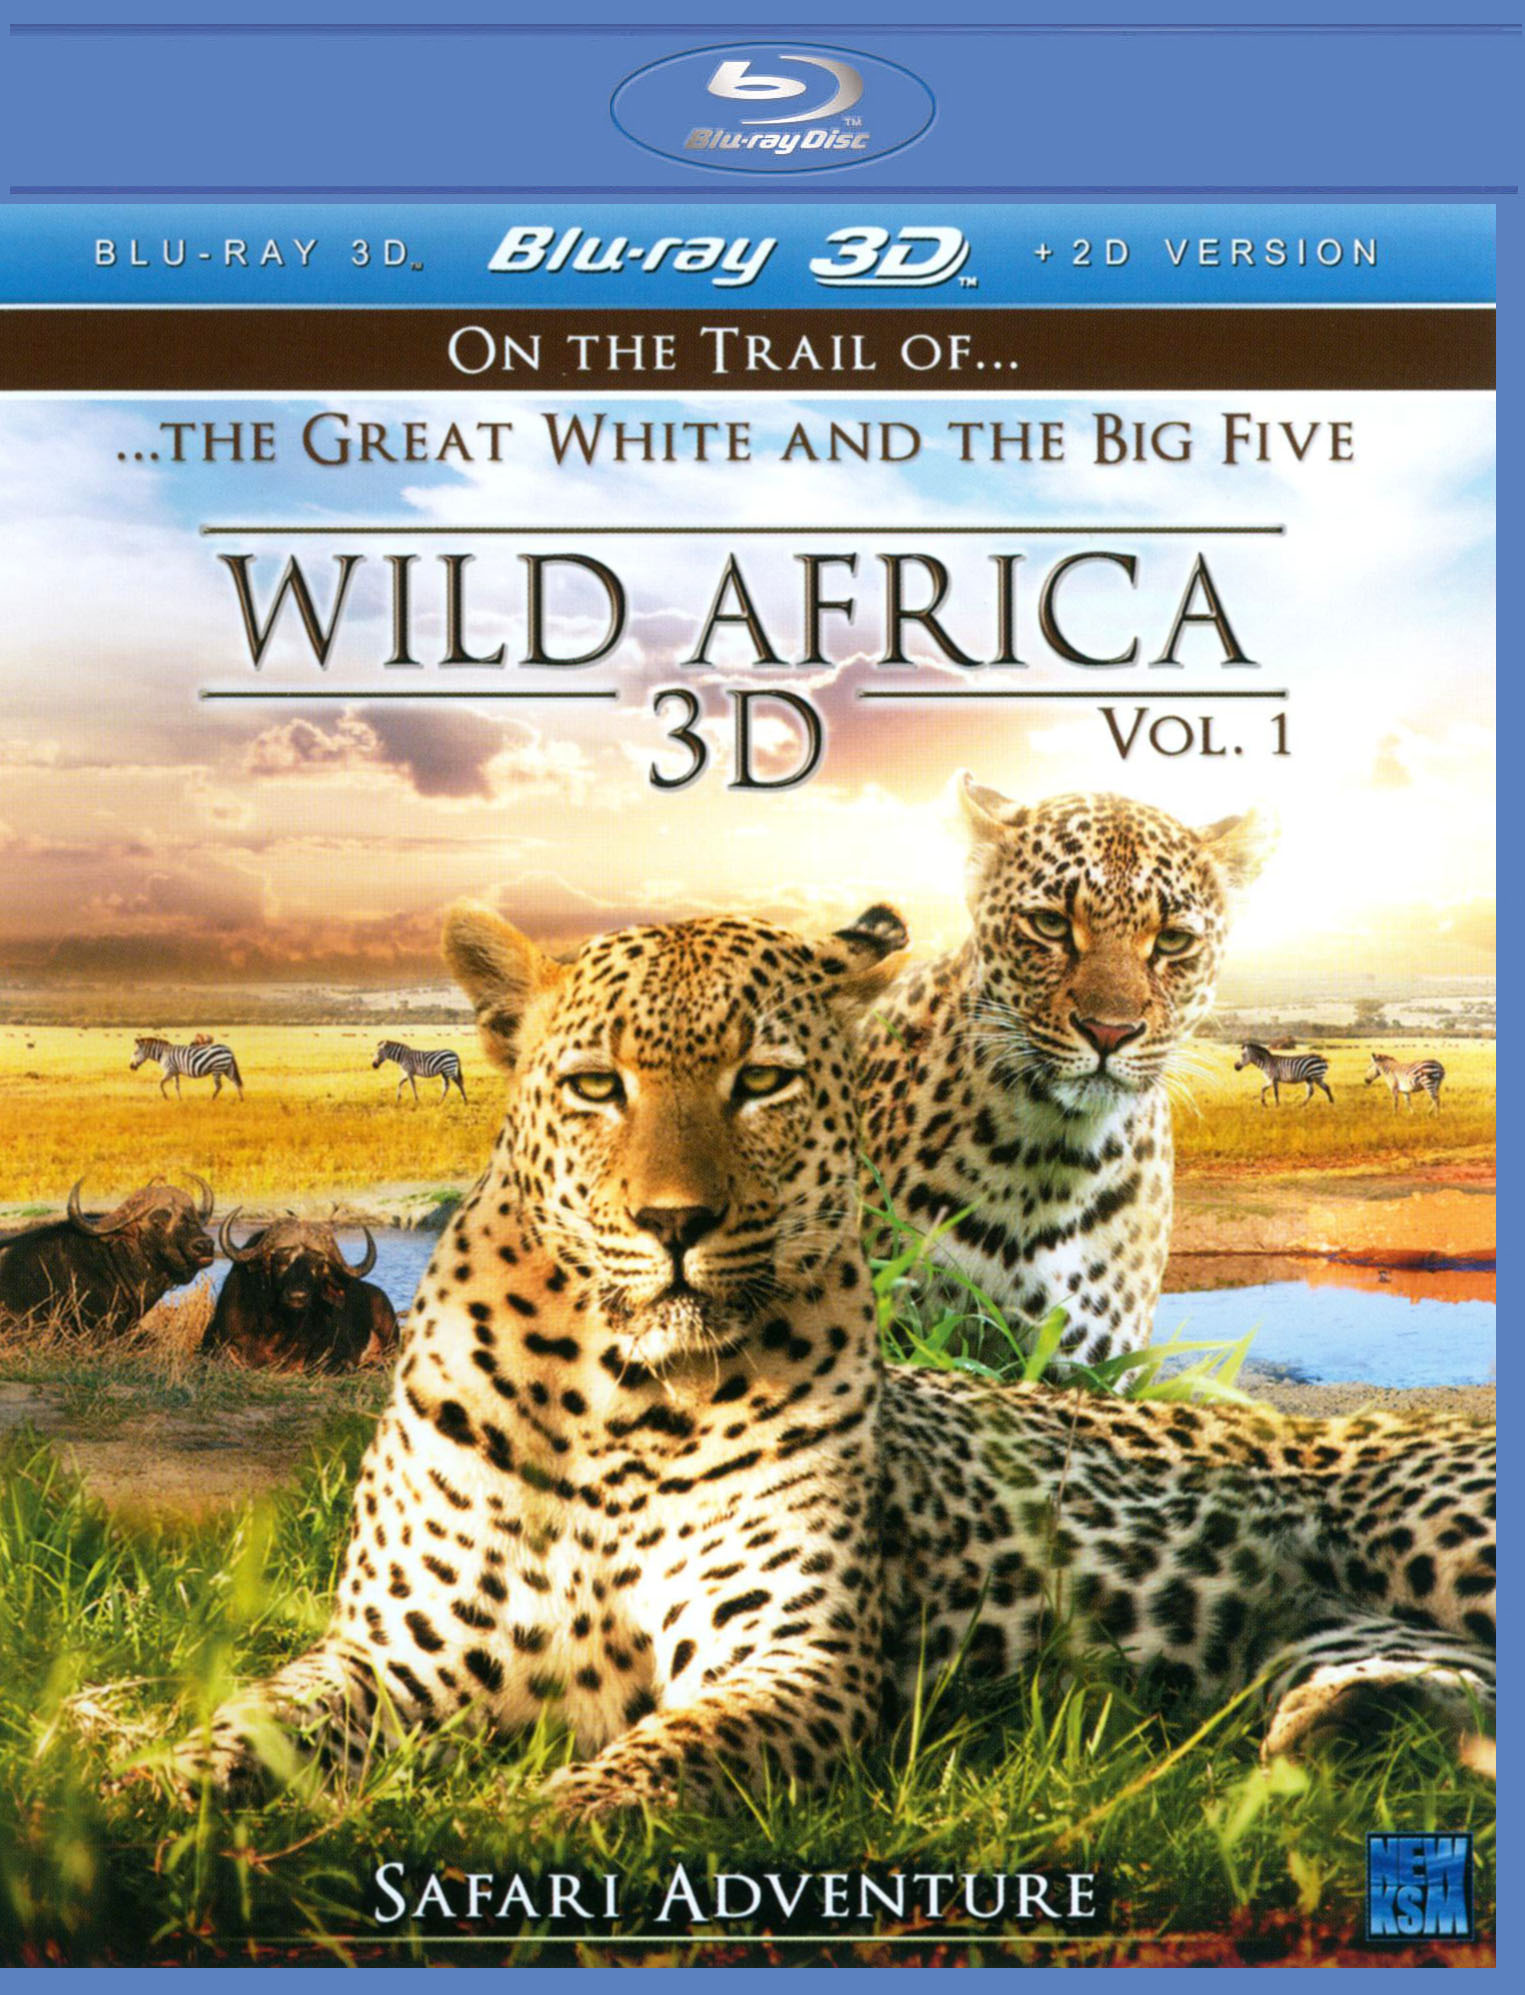 Wild Africa 3D, Vol. 1: Safari Adventure